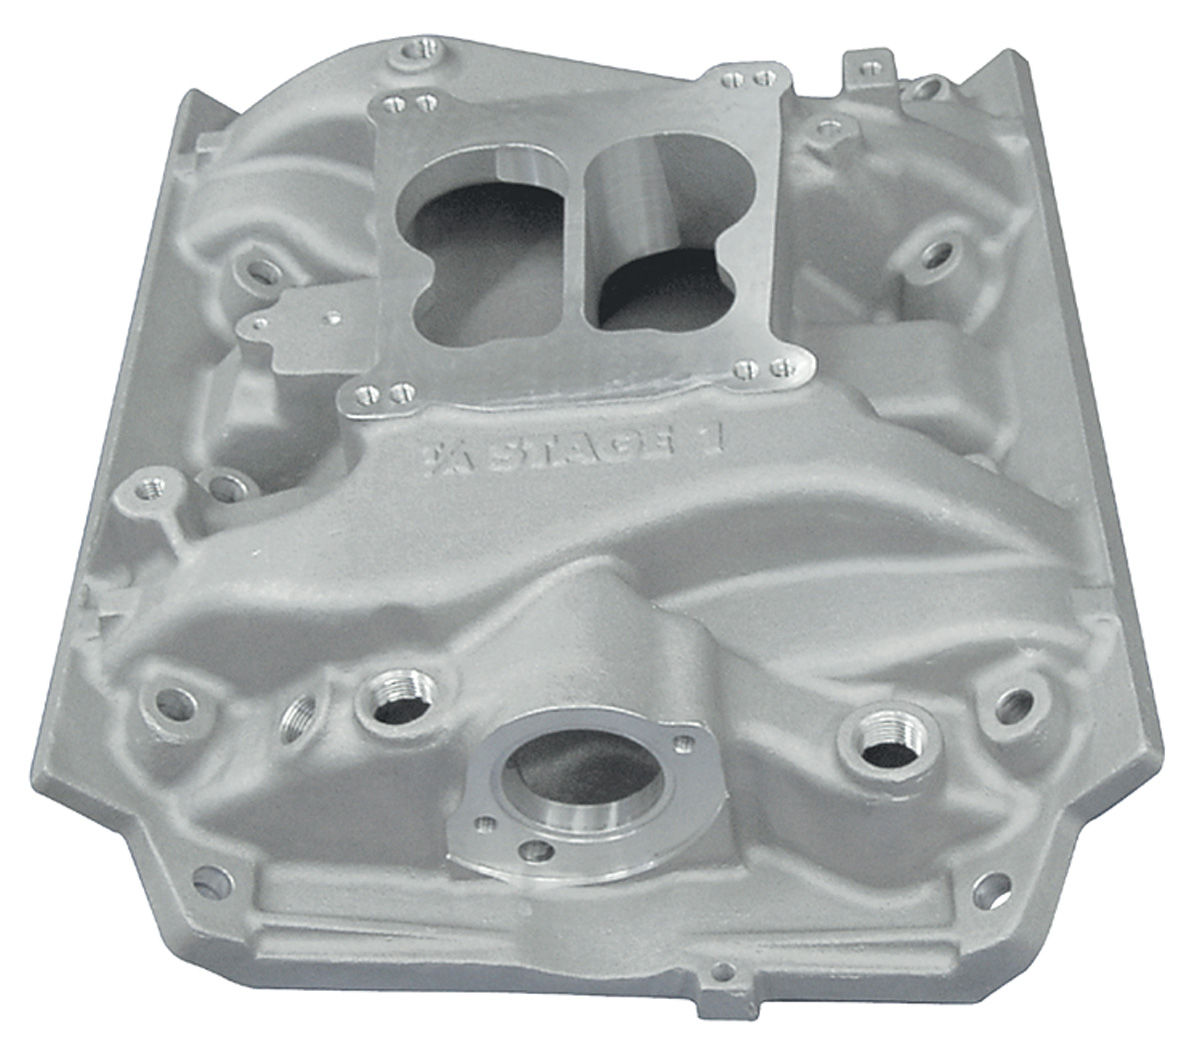 Buick 340 Engine For Sale: 1961-72 Skylark Intake Manifold, Stage 1 350 Buick All 350